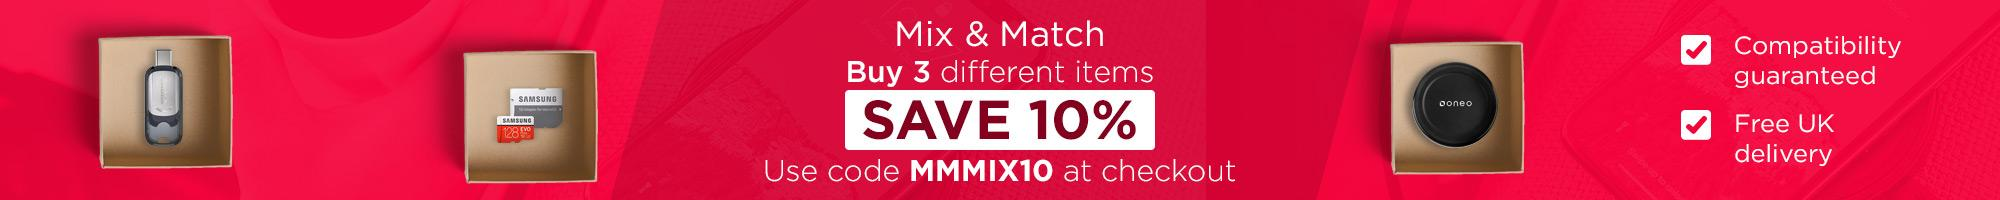 Compatibility Guaranteed - Mix & Match! Buy 3 different items SAVE 10% Use code MMMIX10 at checkout.